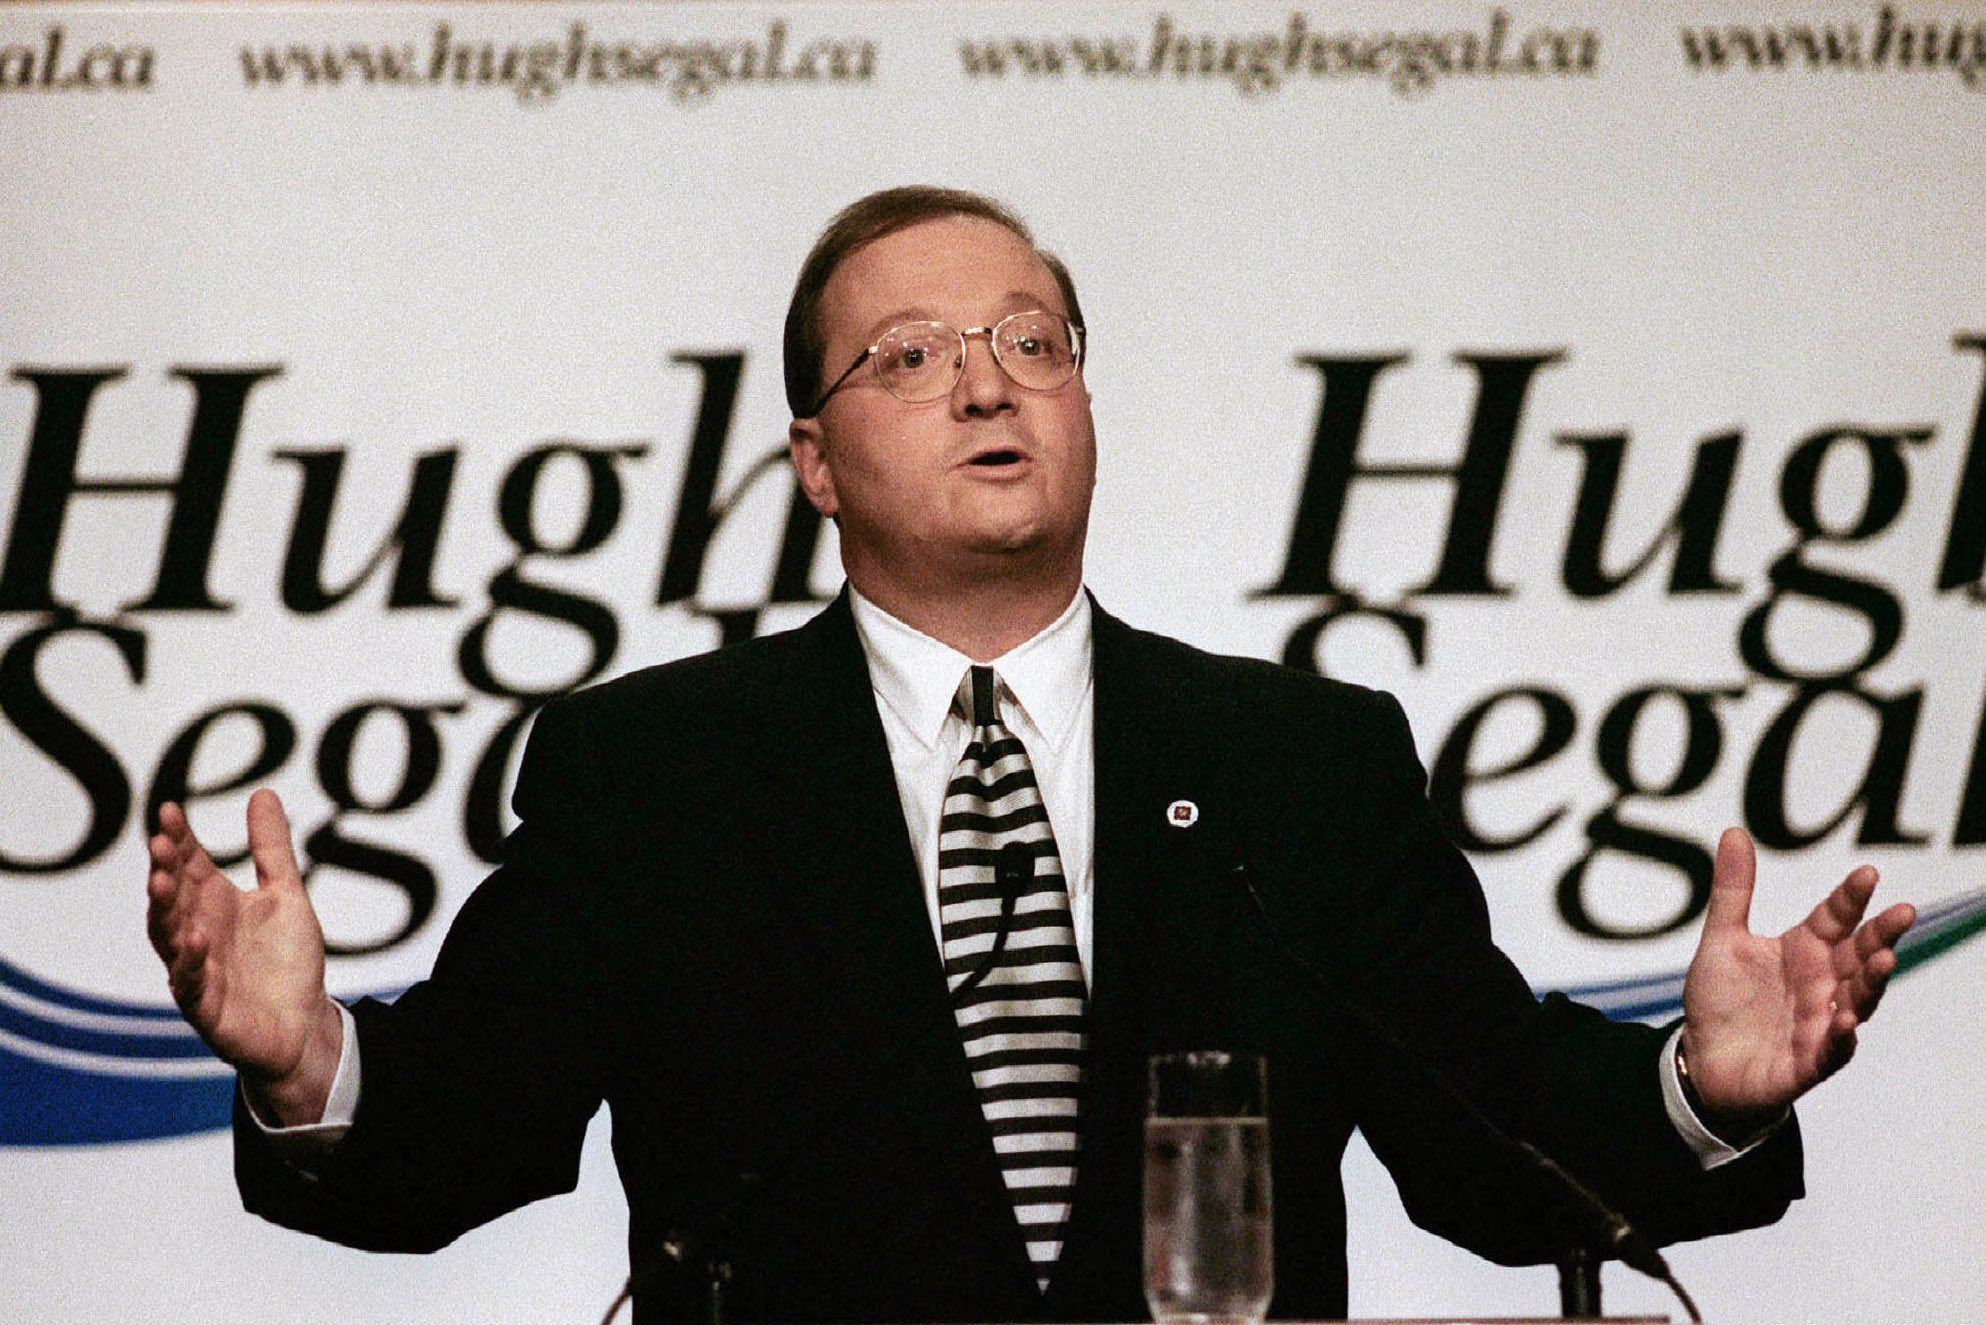 hugh segal